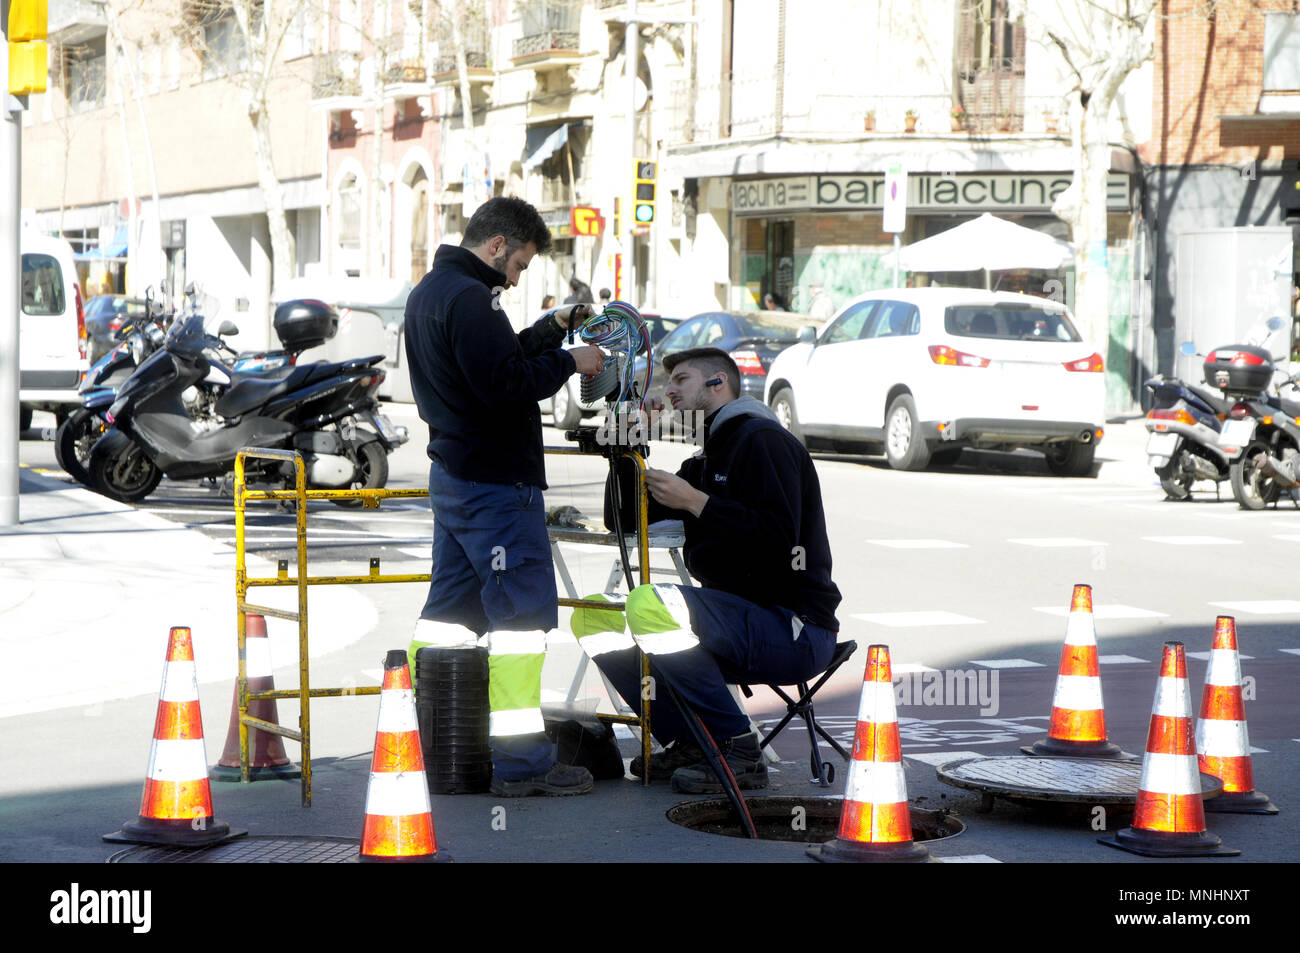 TECHNICIANS INSTALLING OPTIC FIBER - Stock Image